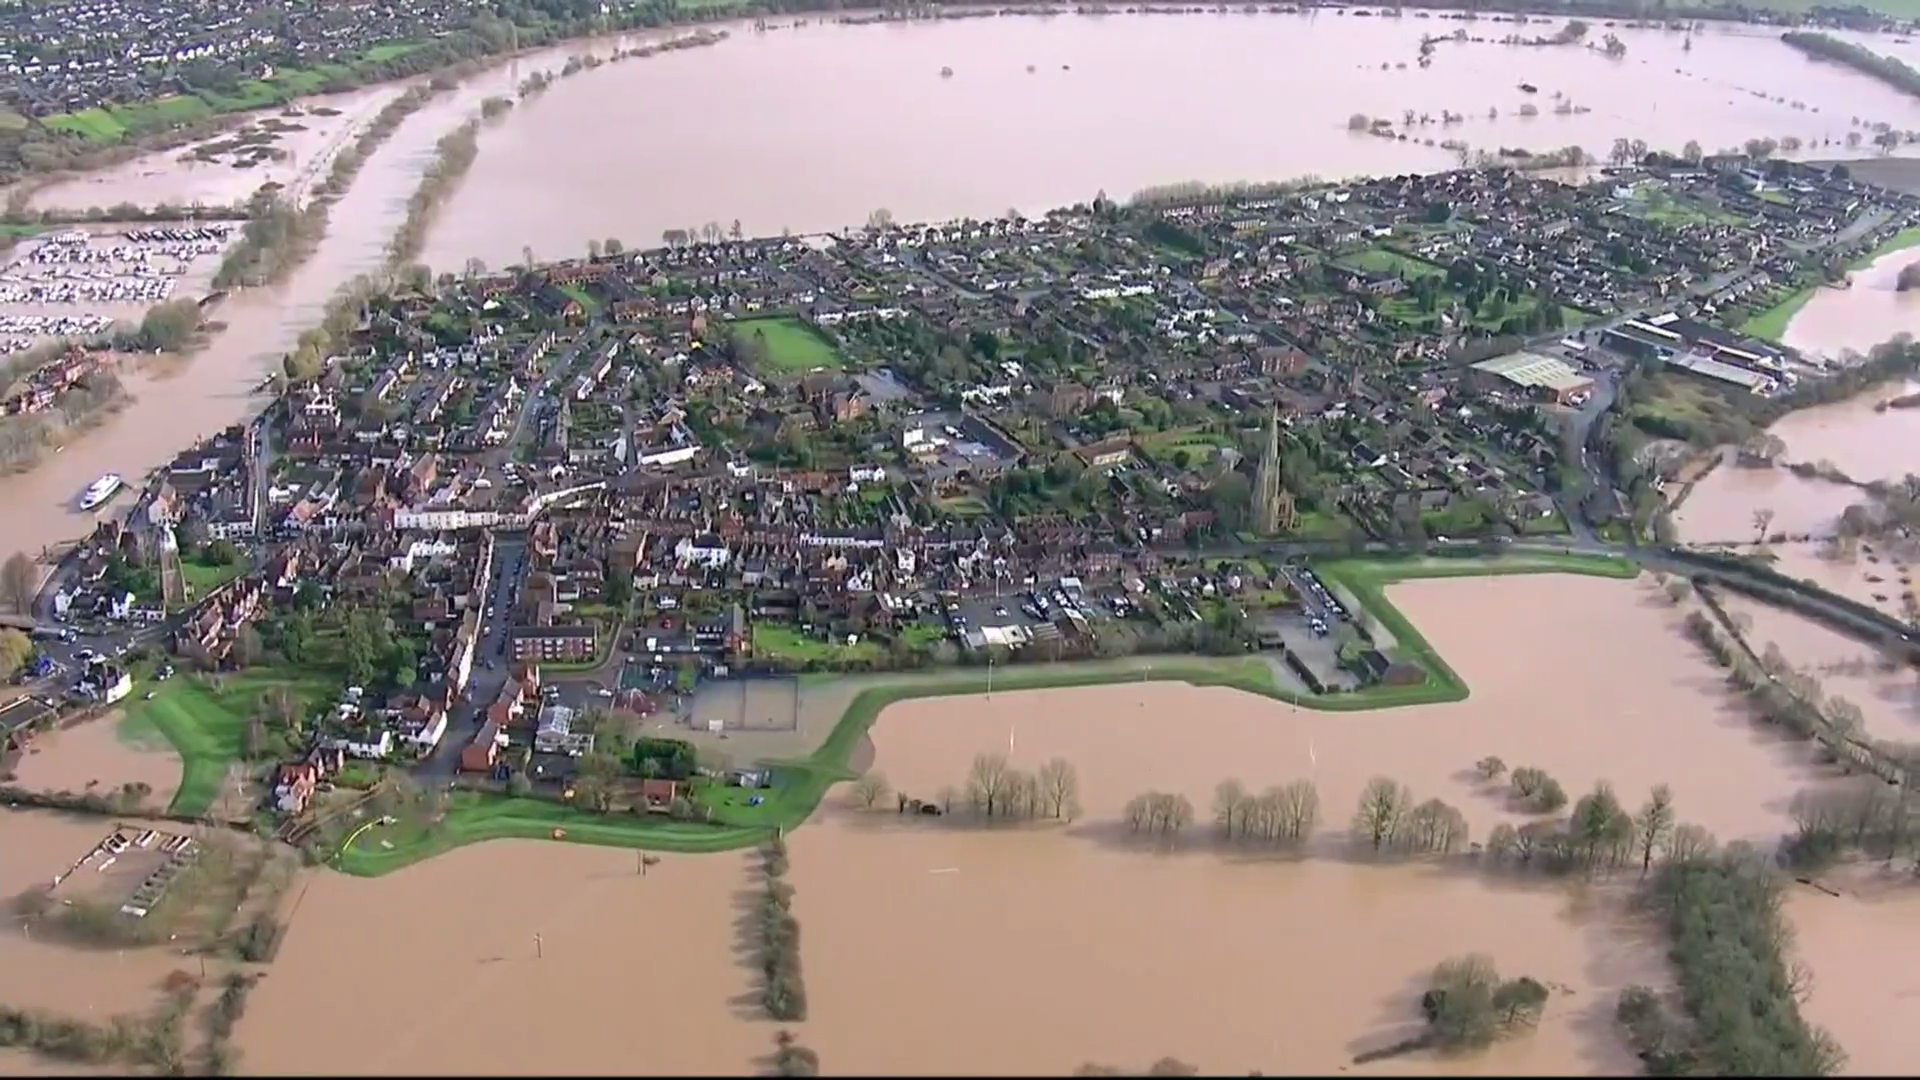 Residents evacuated as river levels rise - channel 4